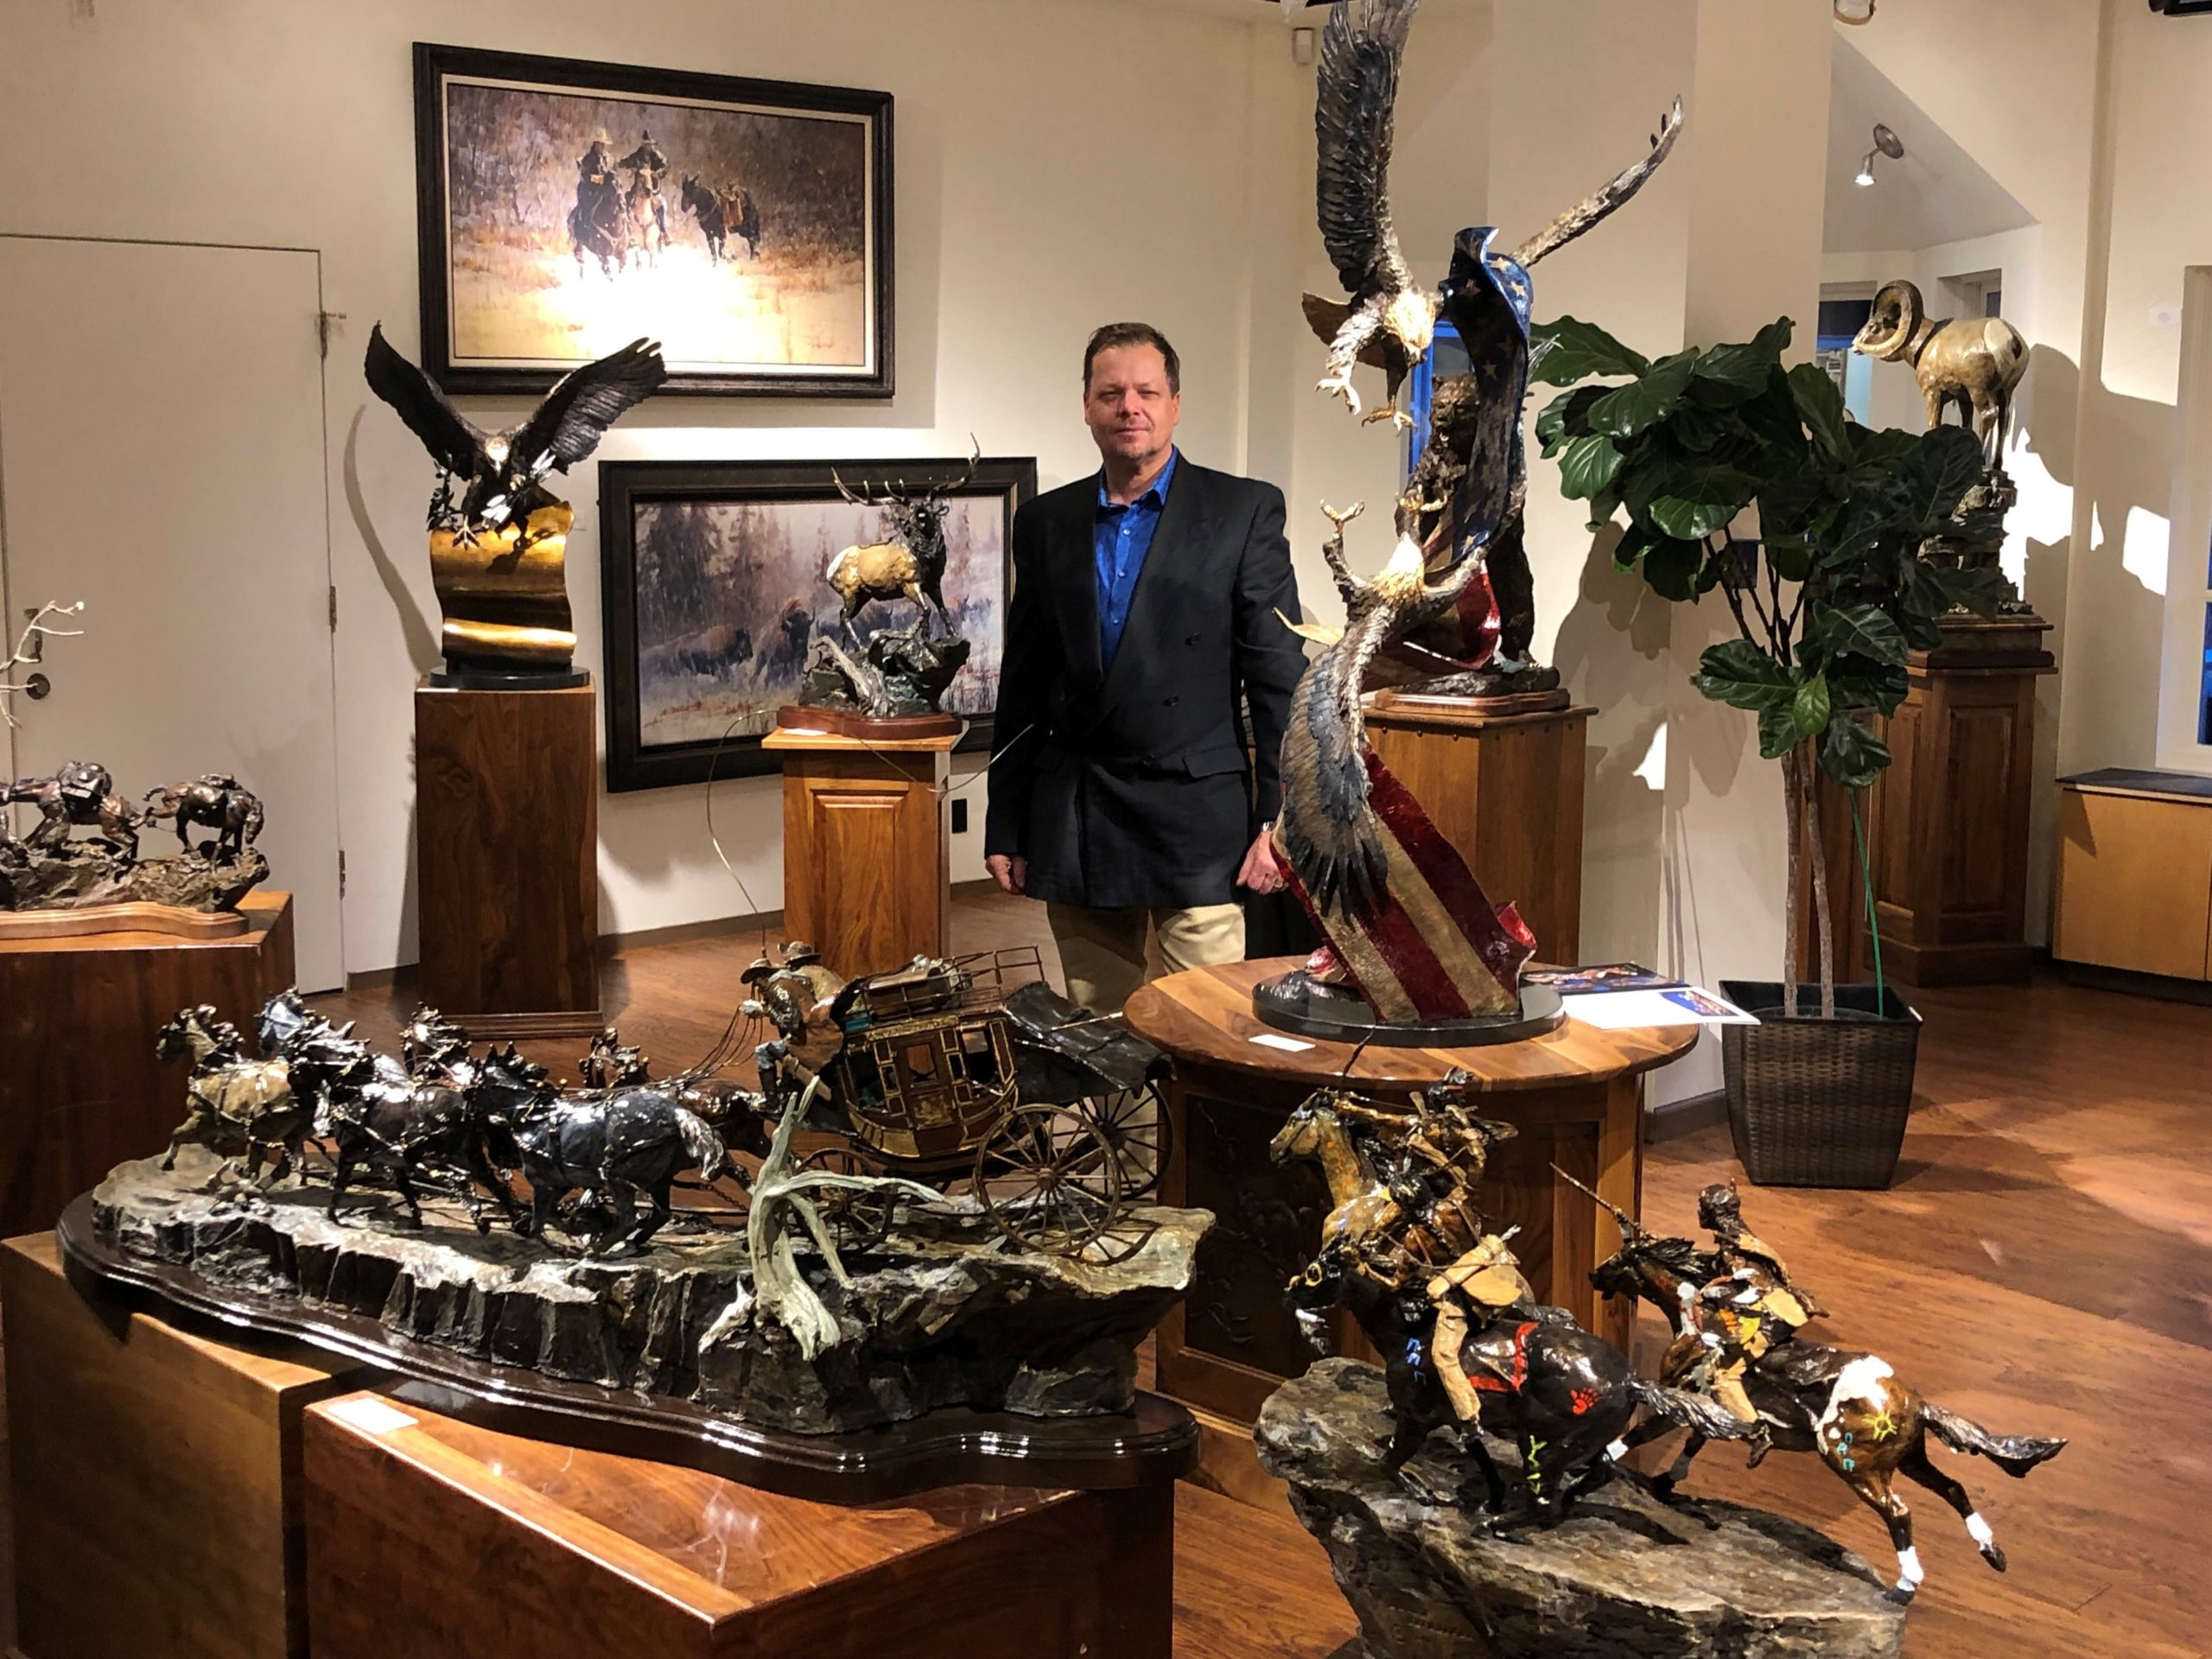 laran ghiglieri at c anthony gallery in beaver creek colorado surrounded by his famous bronze sculptures